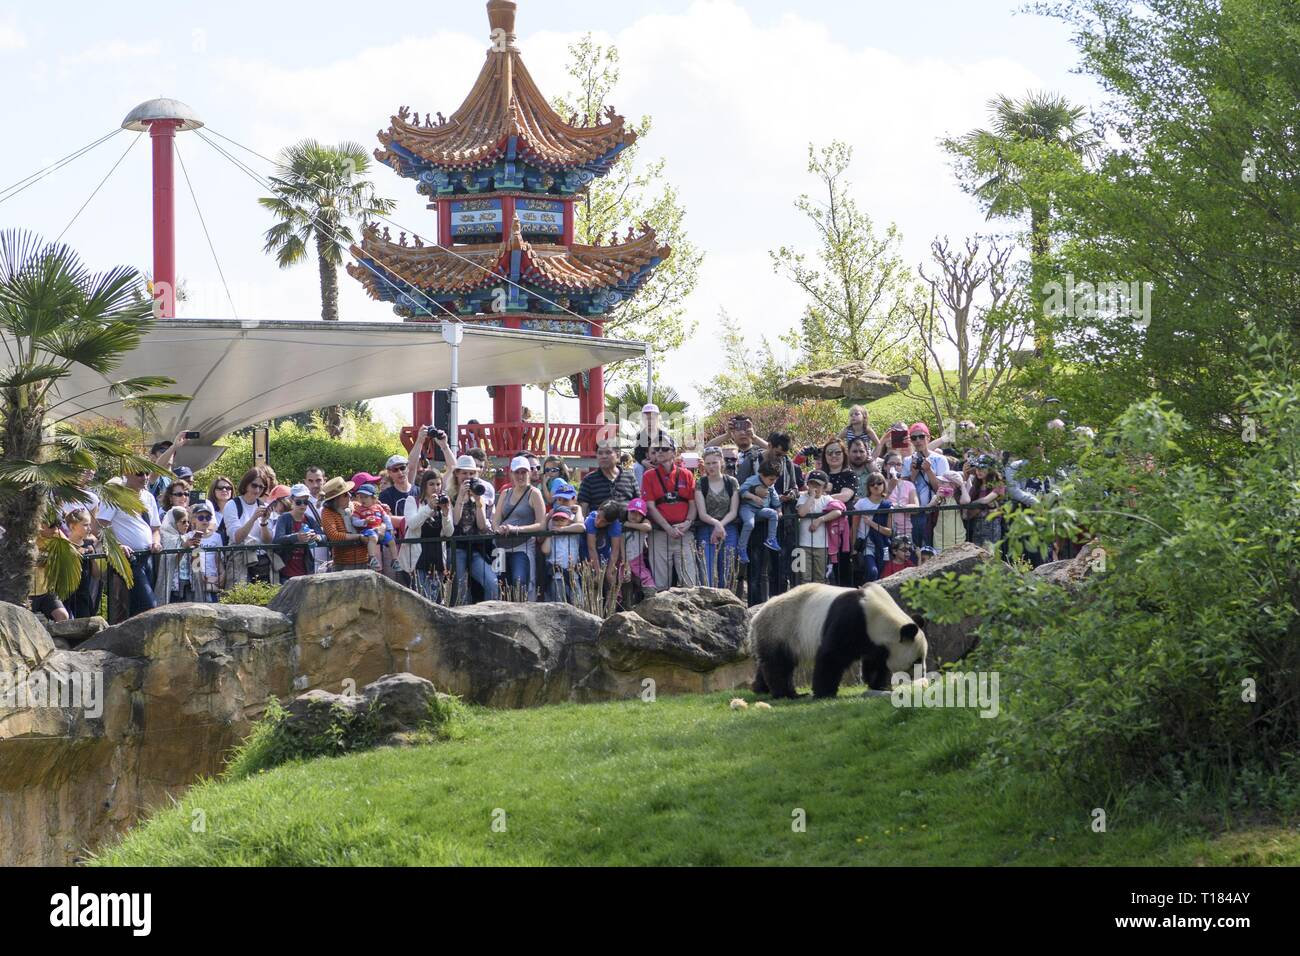 Beijing, France. 24th Apr, 2018. Visitors watch the male giant panda 'Yuan Zi' in Zooparc de Beauval, Saint-Aigan, France, on April 24, 2018. Credit: Chen Yichen/Xinhua/Alamy Live News - Stock Image